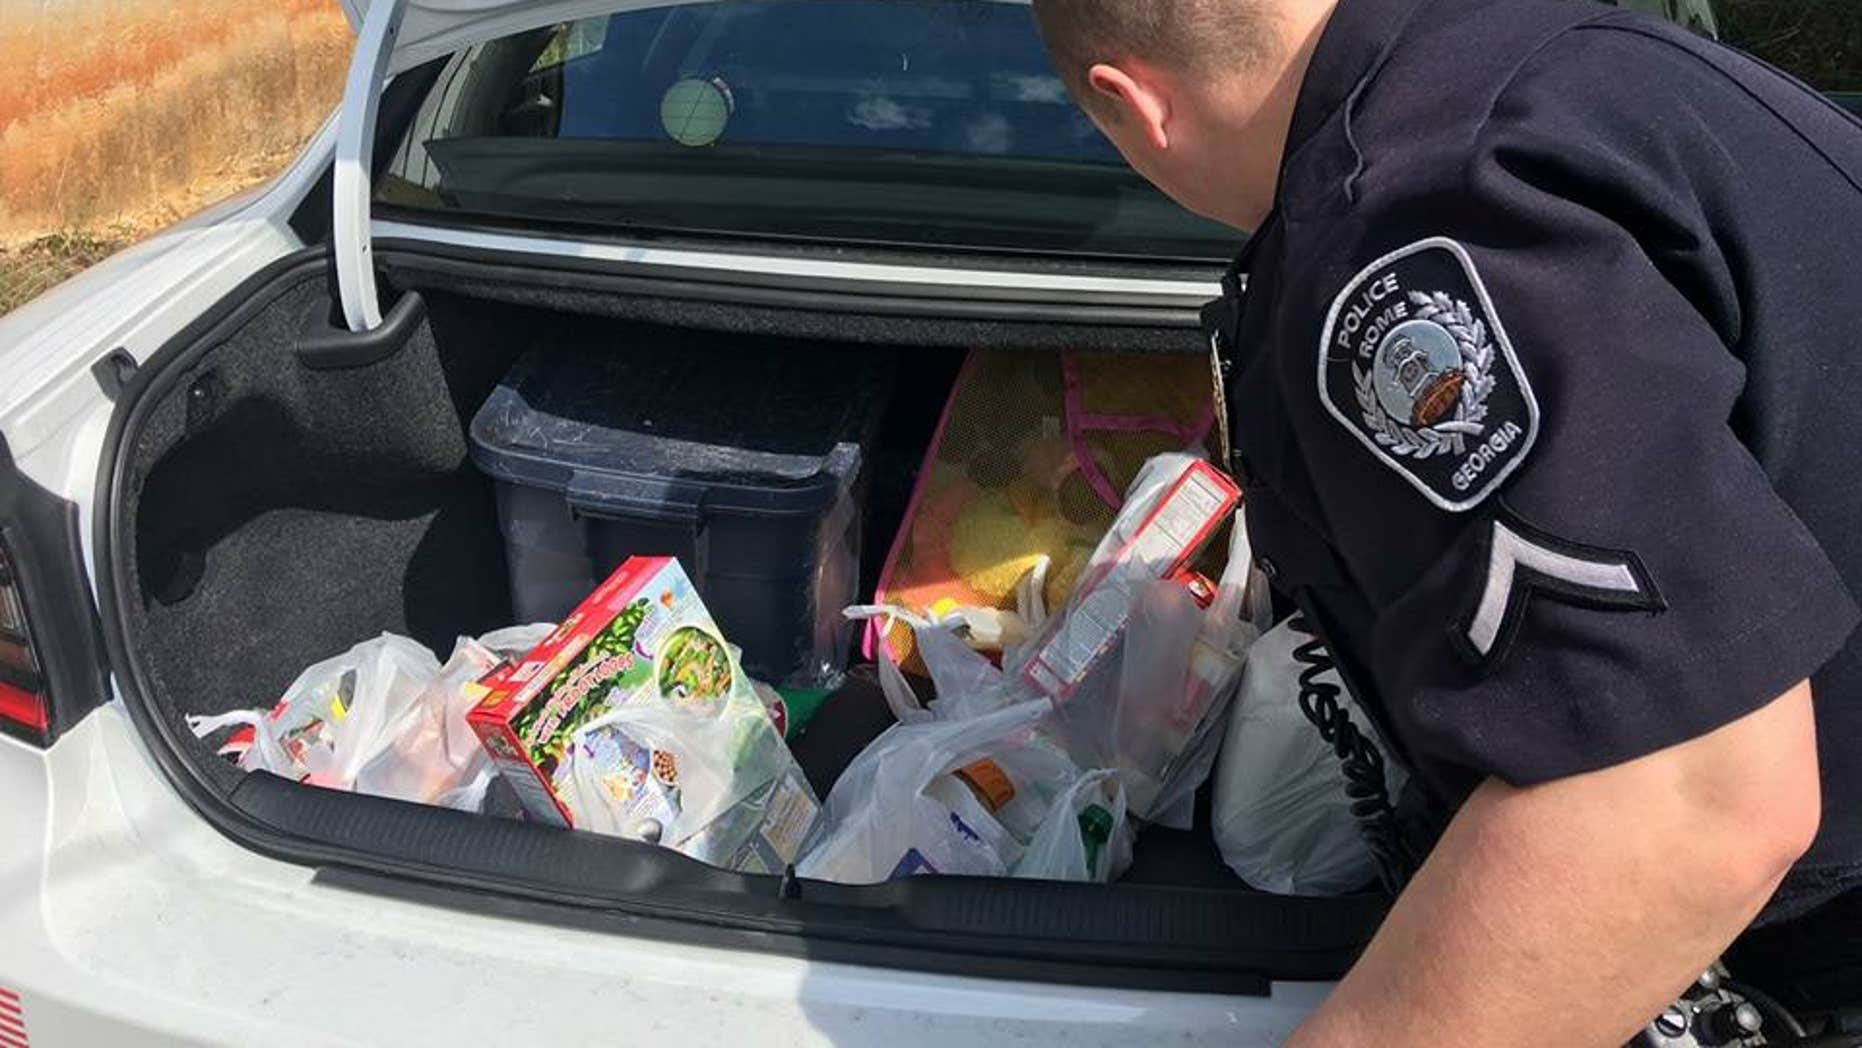 Two Rome, GA police officers bought over $50 worth of groceries for a teen caught shoplifting.